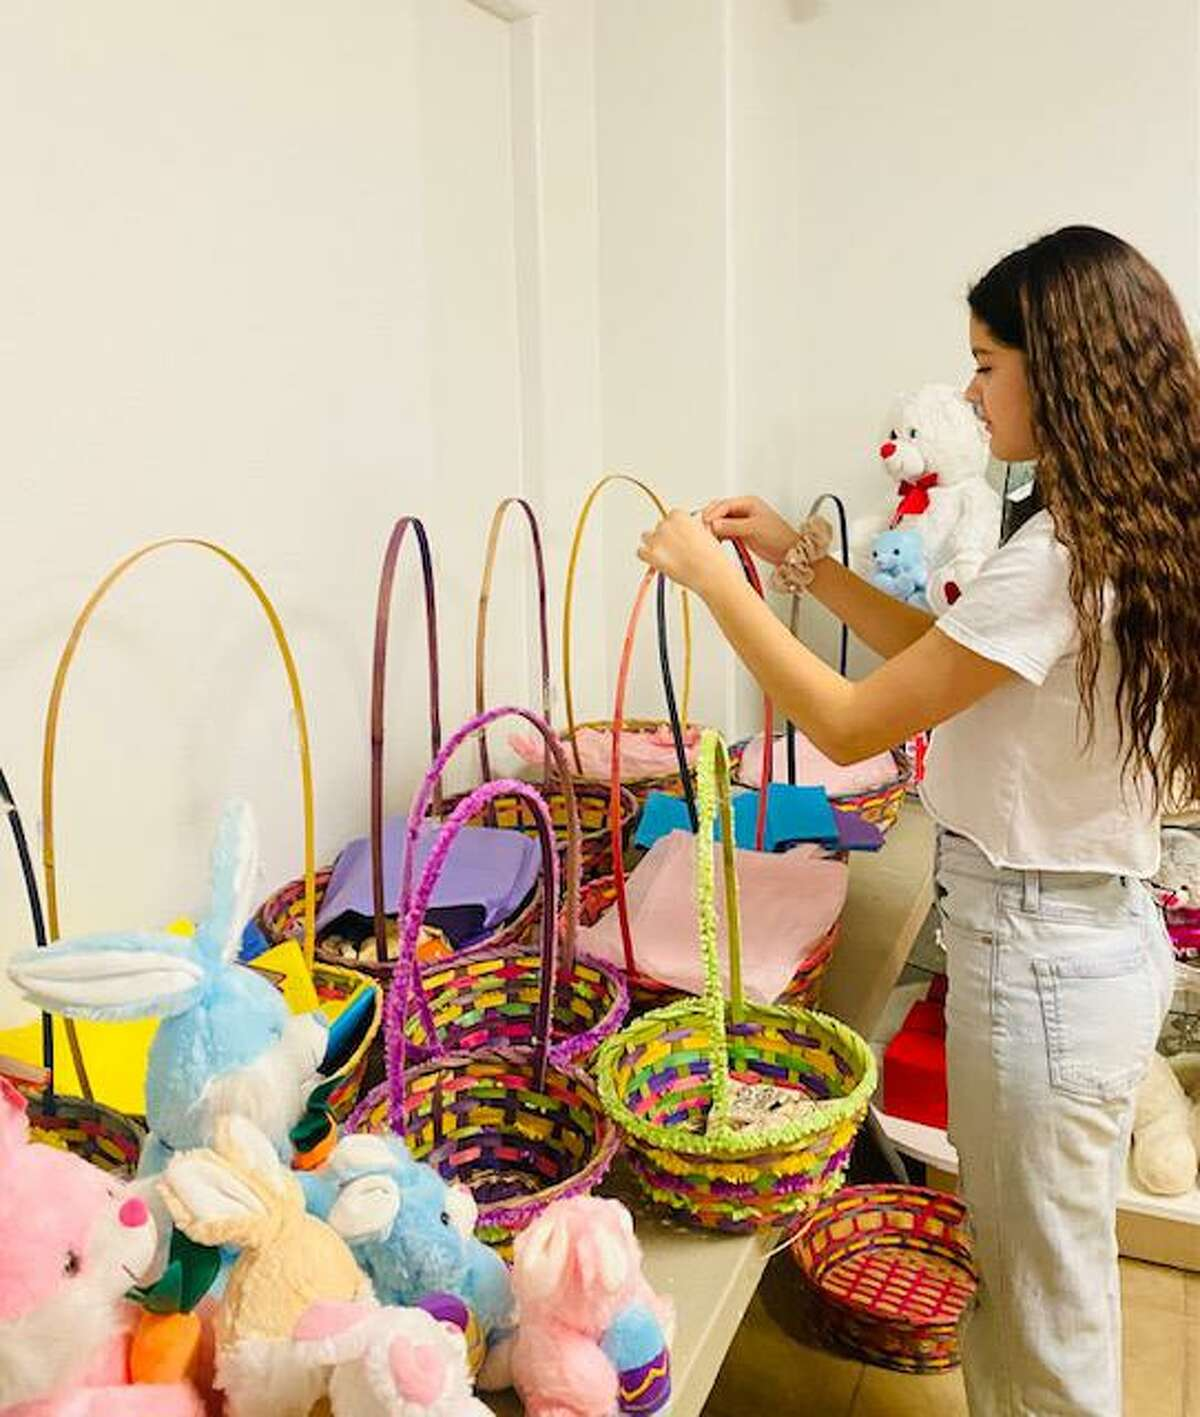 Miss Jr. Laredo Alheyda J. Guerra, 13, prepares Easter baskets for donation to kids around the city. She helped lead the donation of 116 baskets for this holiday.